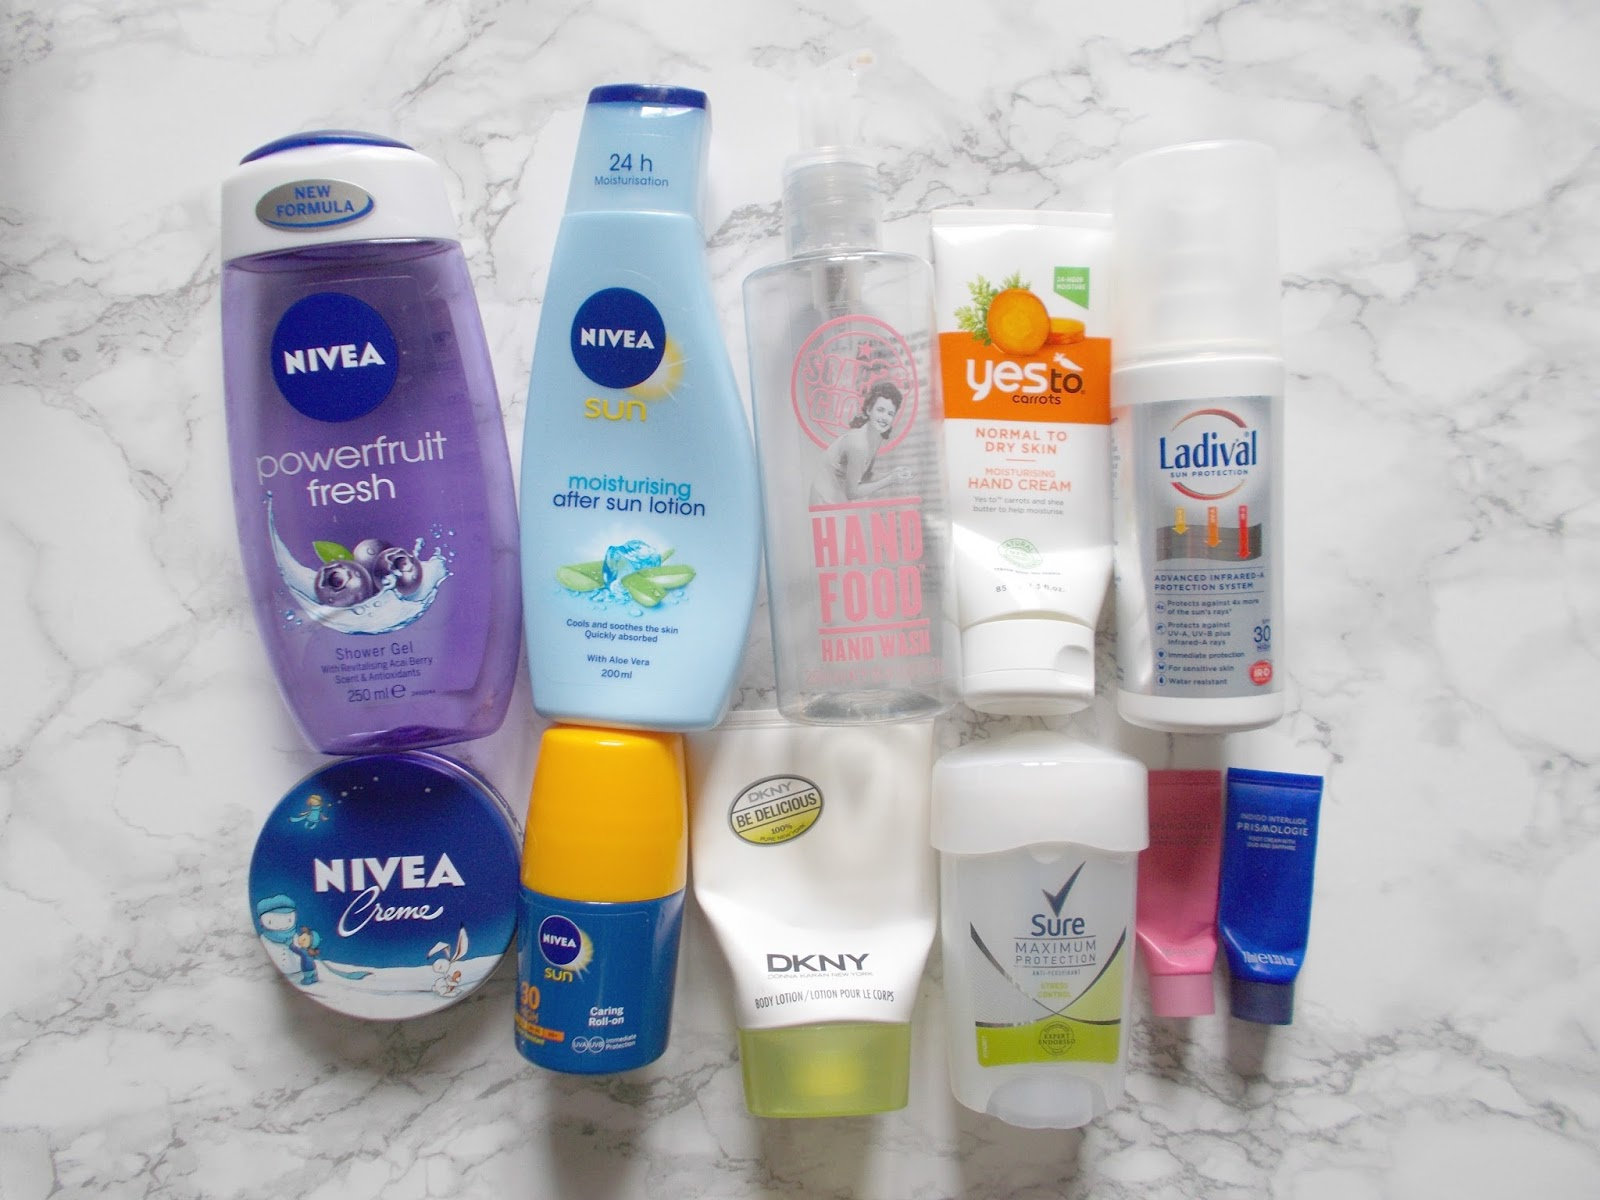 bodycare empties nivea soap and glory yes to carrots ladical dkny sure prismologie